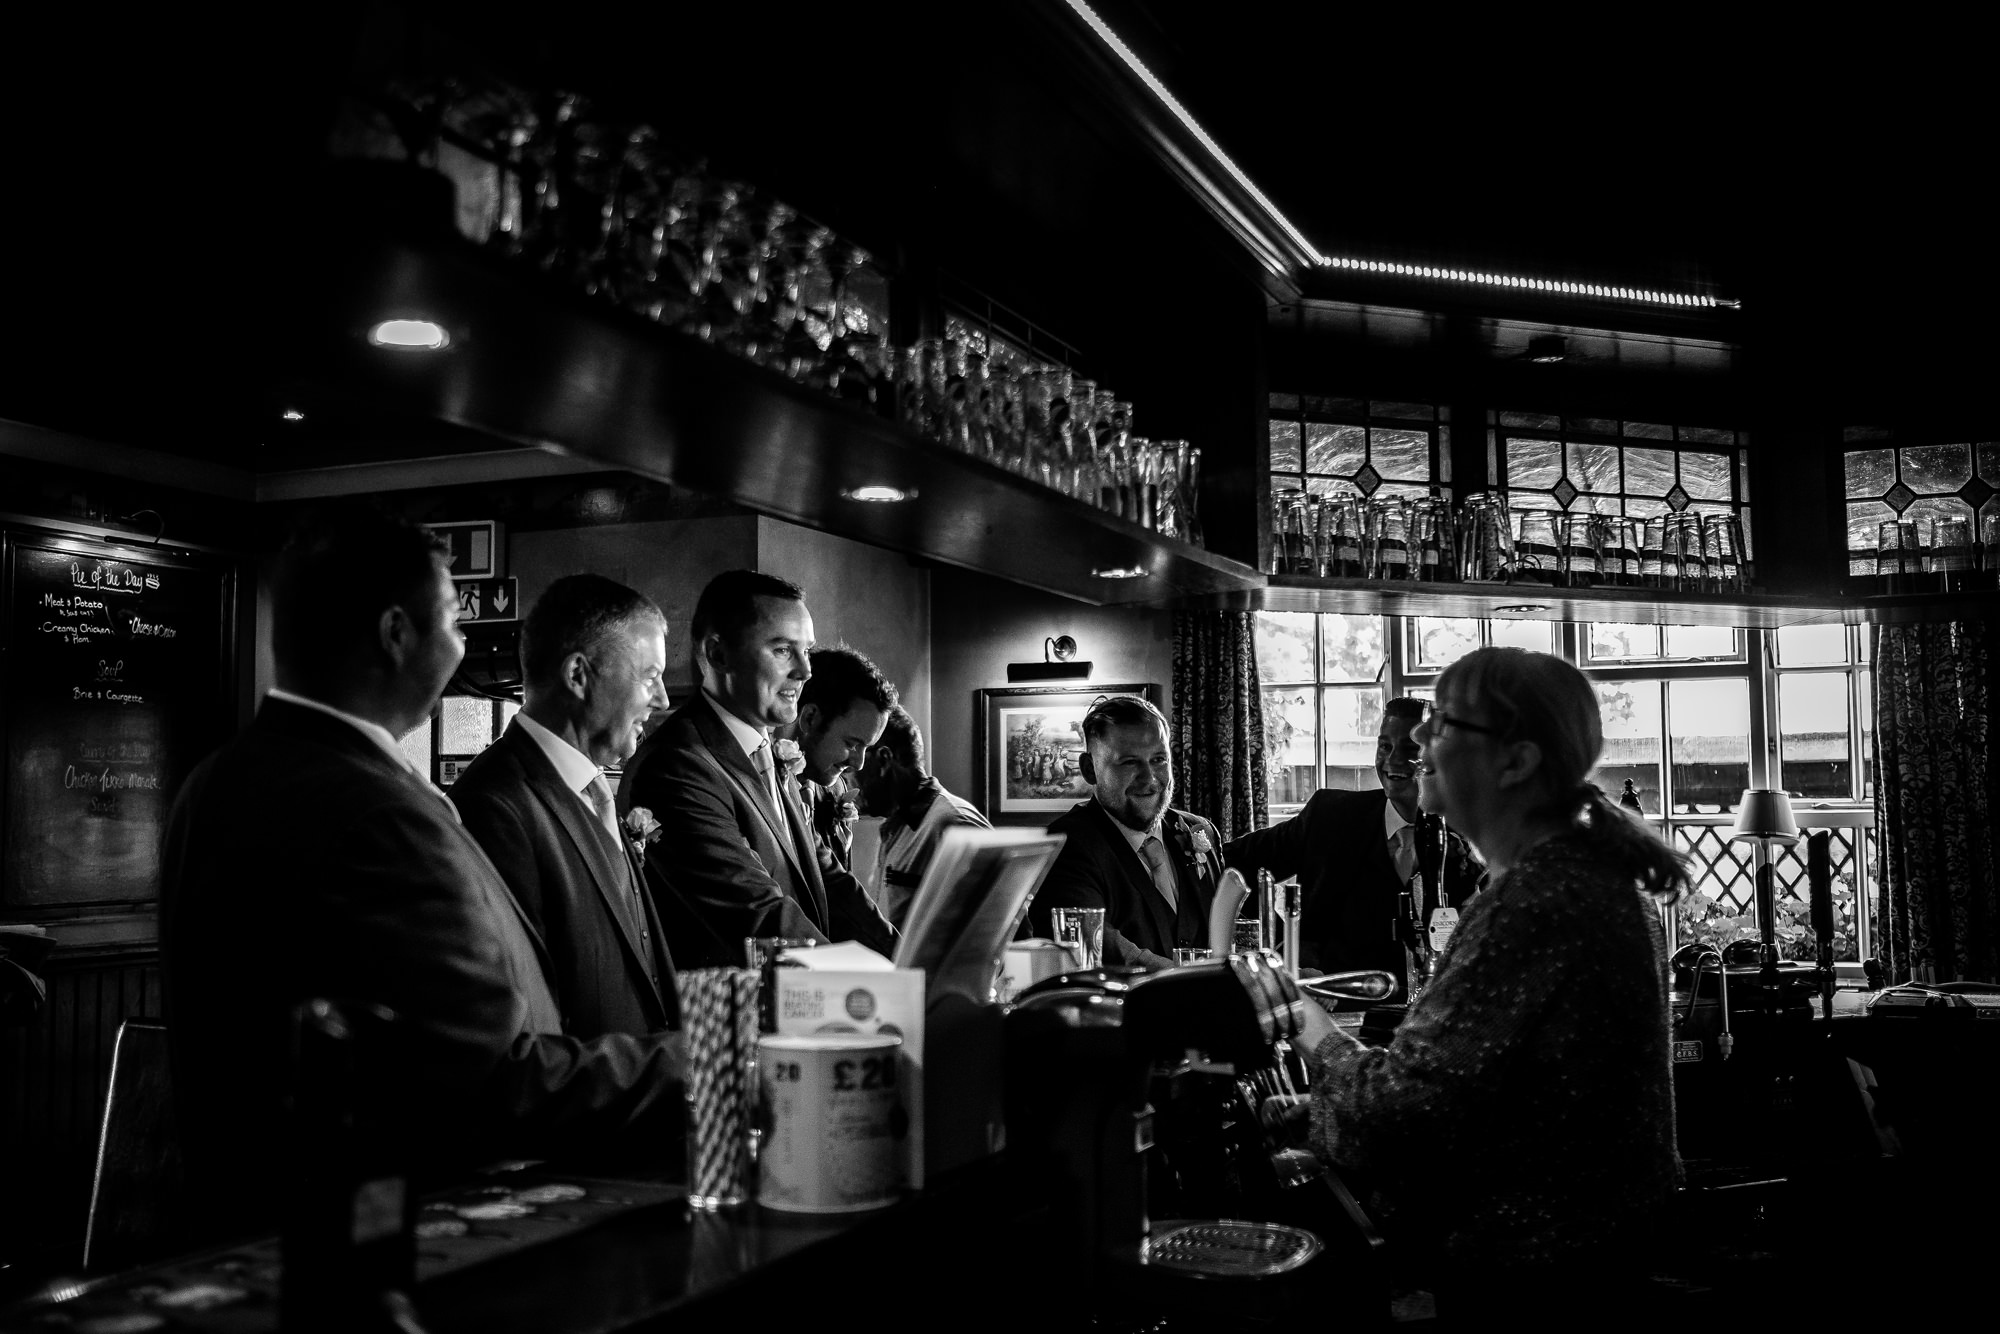 groom at the bar with friends